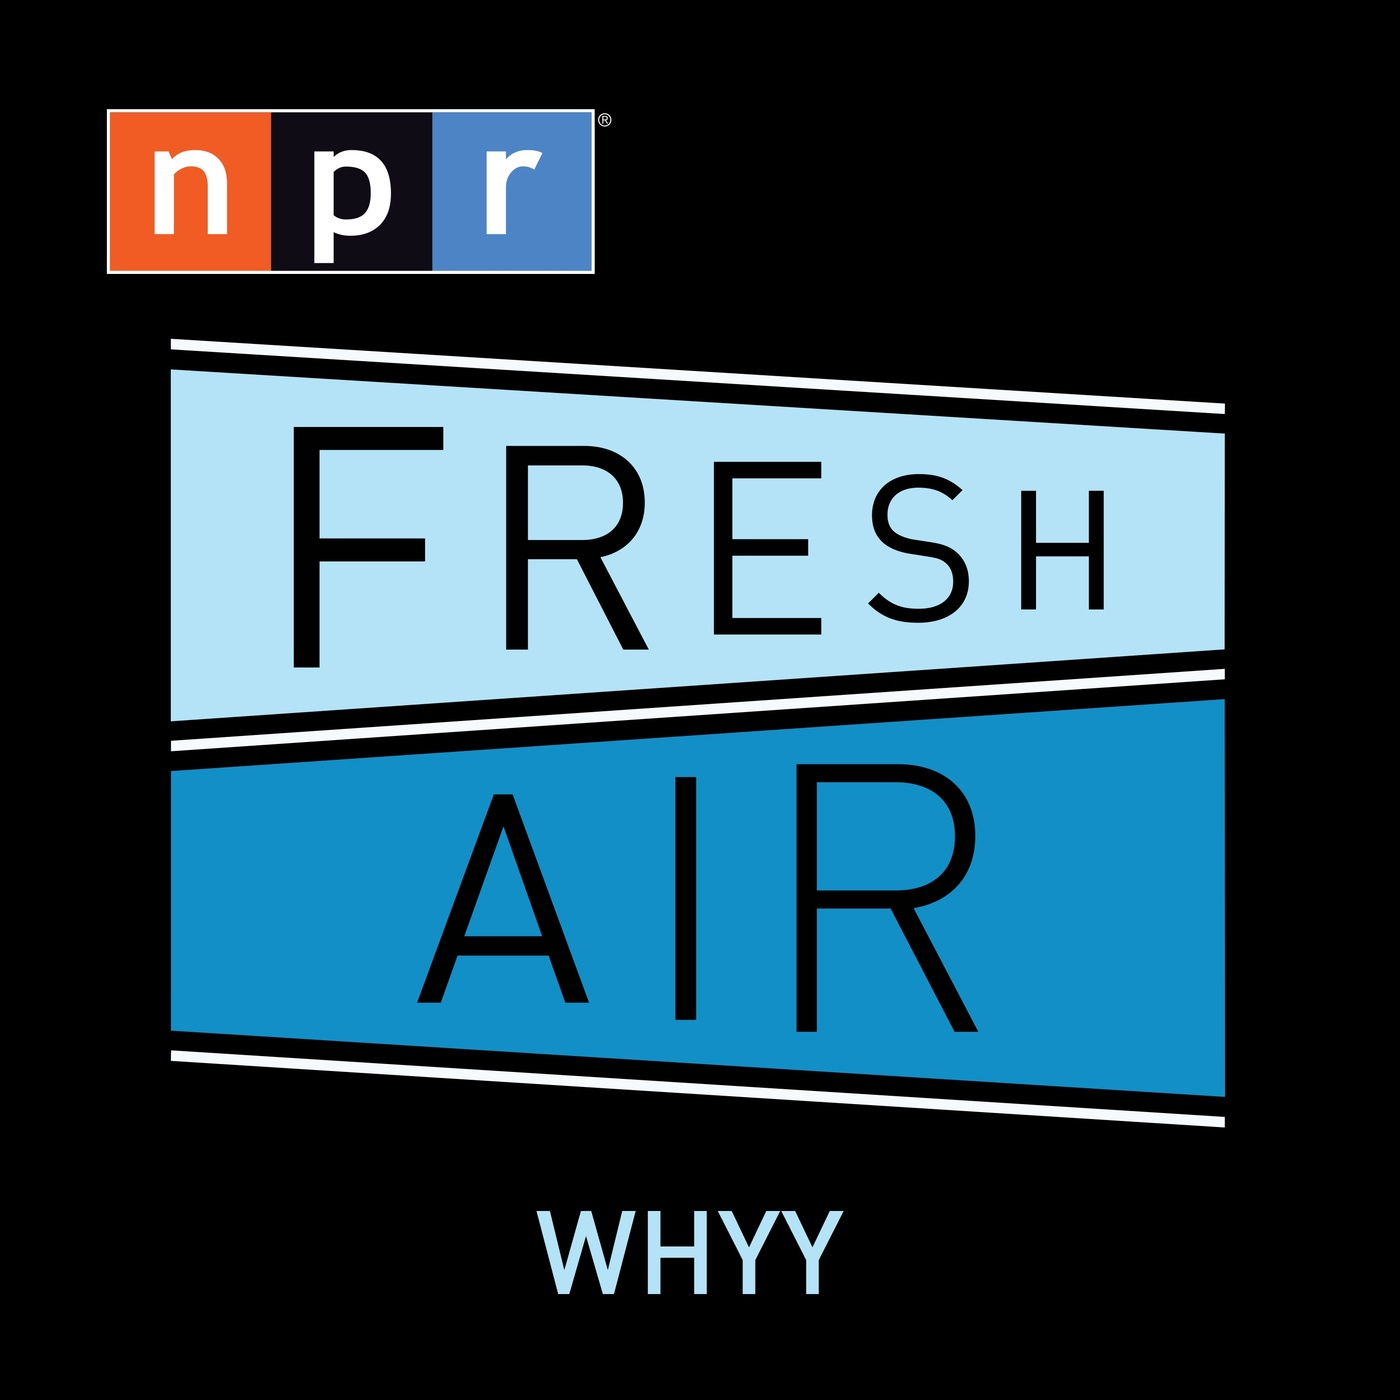 npr fresh air logo